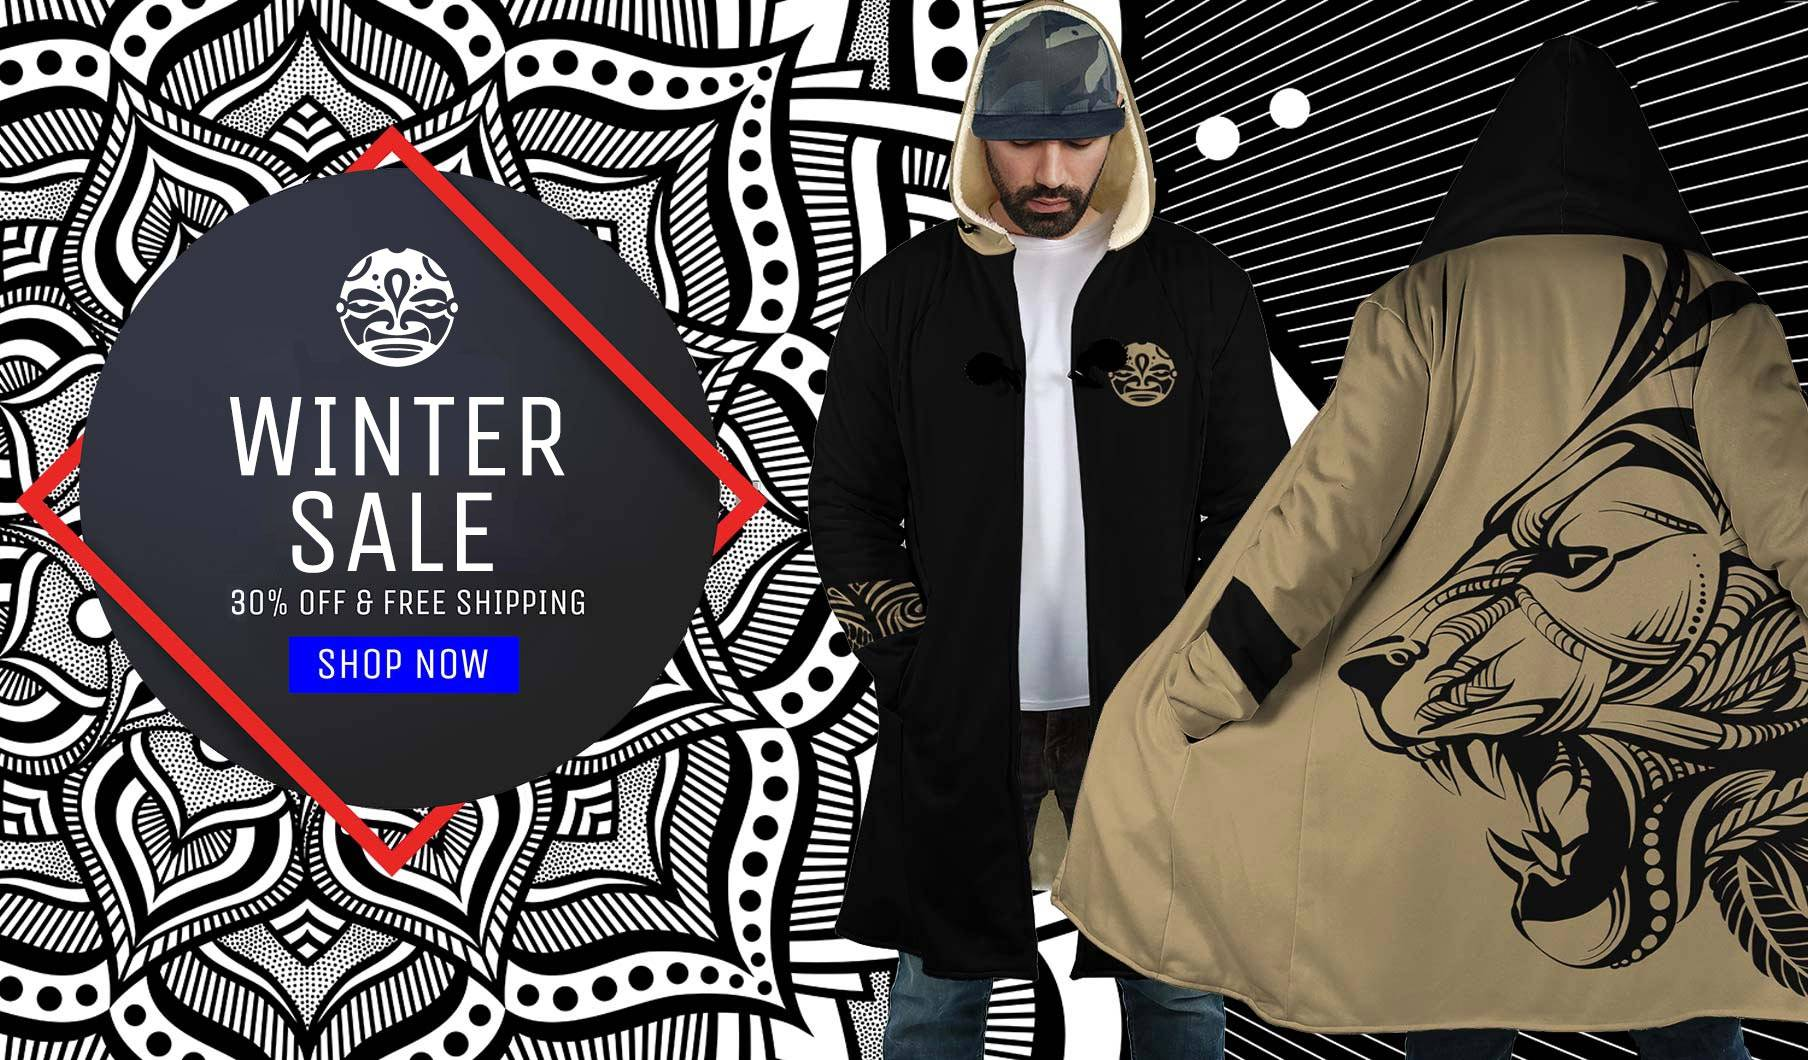 Mind Chill winter sale cloaks sherpa hood